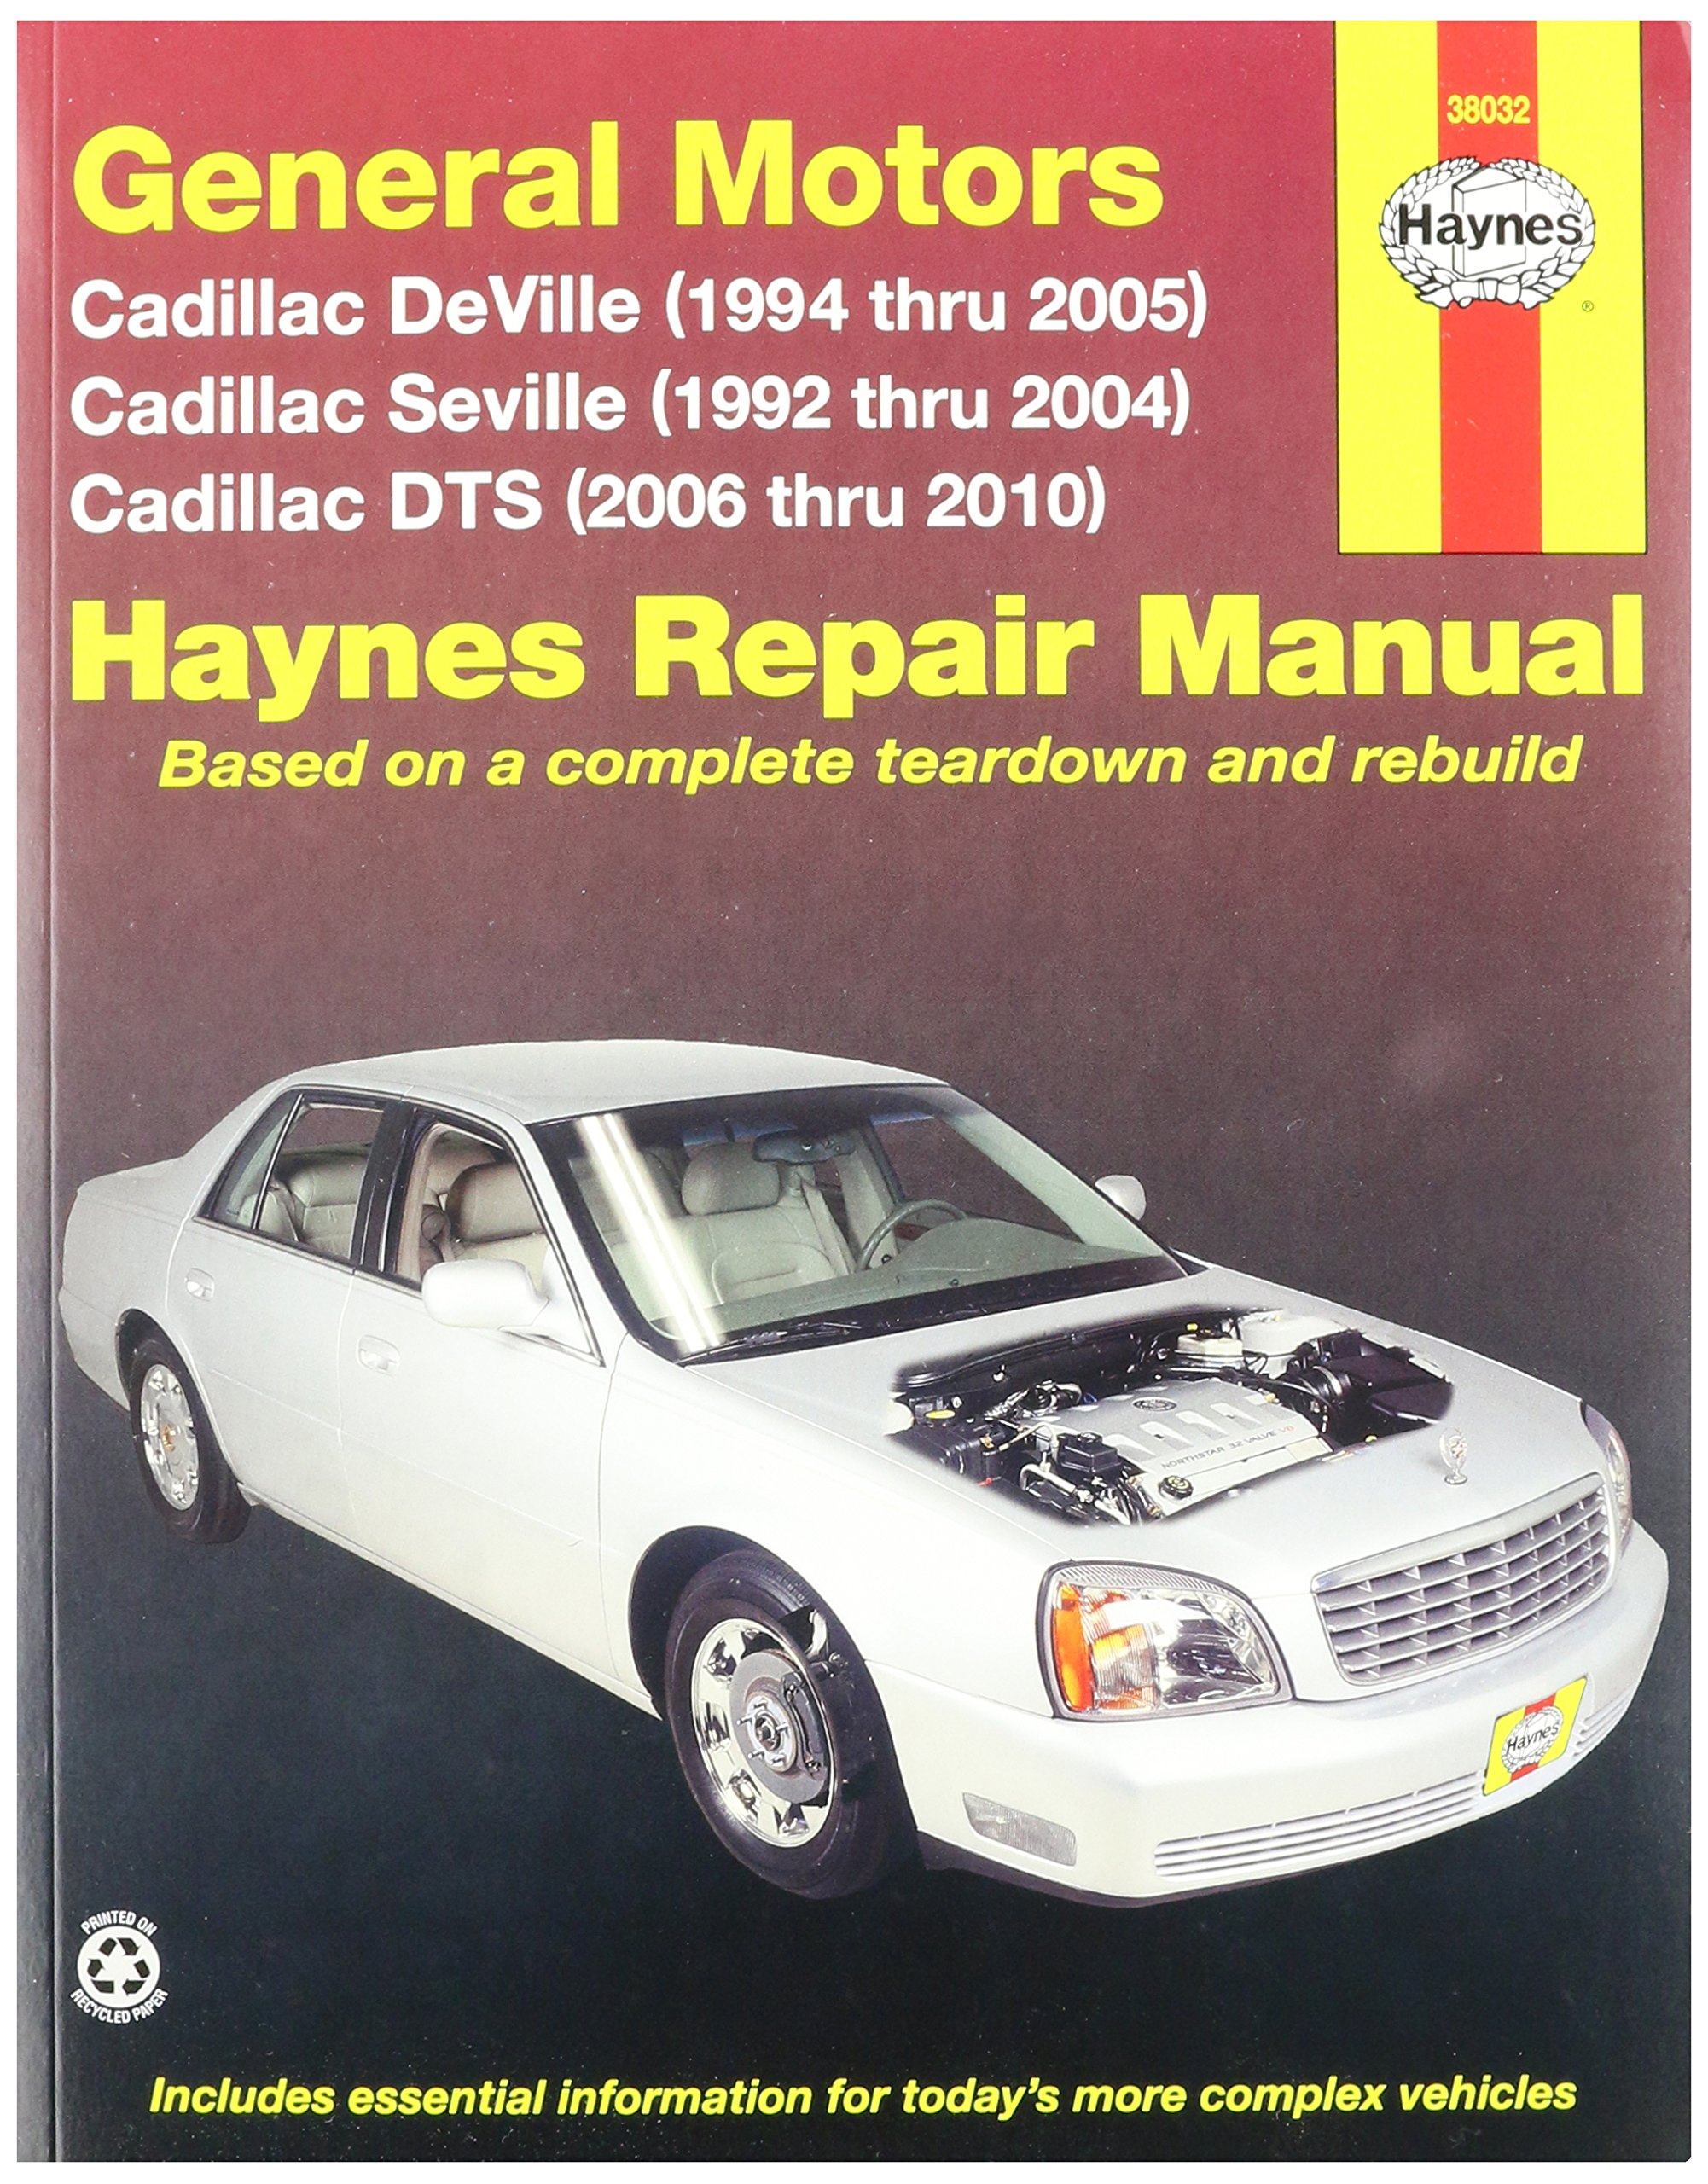 haynes general motors cadillac dts deville and seville 92 10 rh amazon com 95 Deville 90 Deville